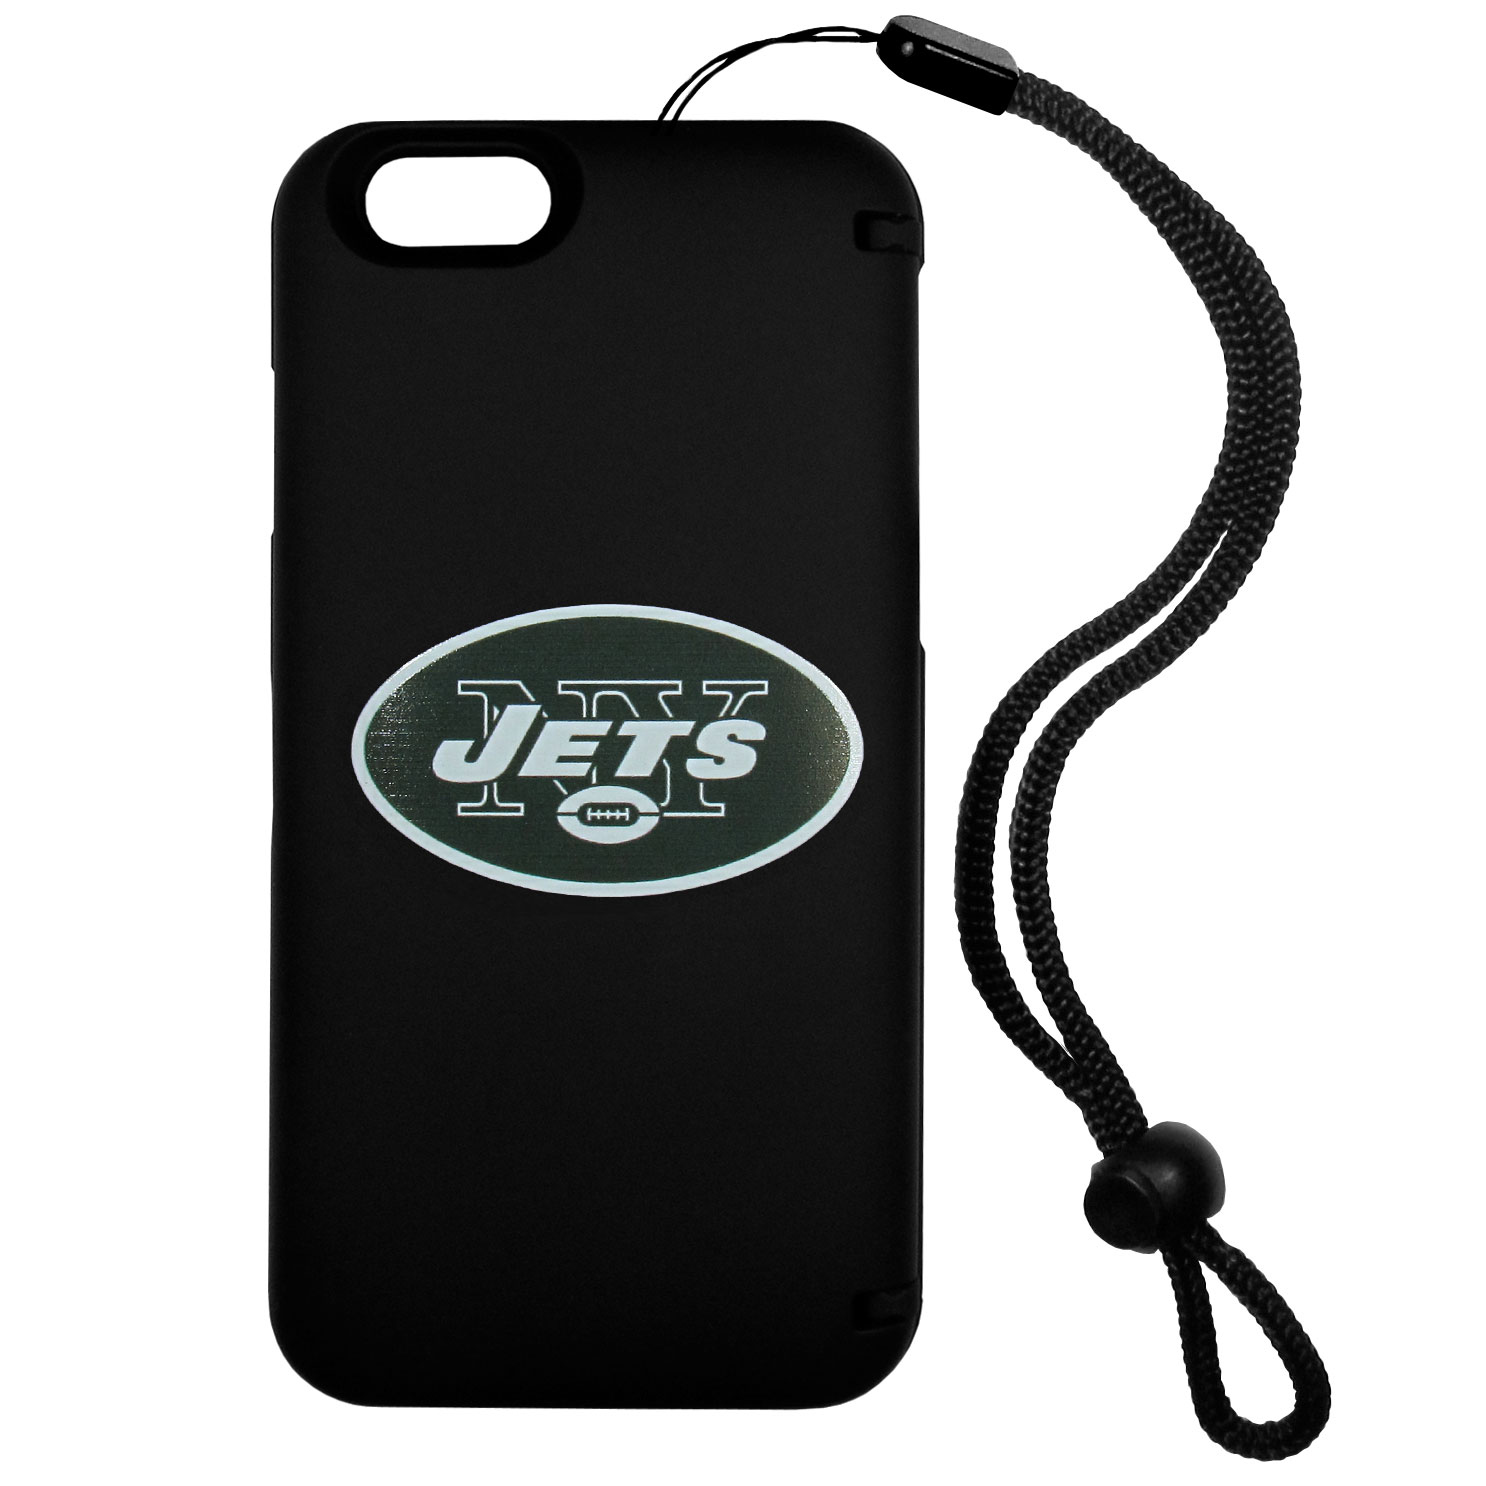 New York Jets iPhone 6 Everything Case - This case really does have everything but the kitchen sink! The hidden compartment lets you keep your cards, money and tickets to the big game safe and secure and has a compact mirror so you can make sure your game face is ready to go. It also comes with a kickstand to make chatting and watching videos a breeze. The wrist strap allows you to travel with ease with your everything case. If that's not enough, it also comes with the New York Jets logo printed in expert detail on the front.